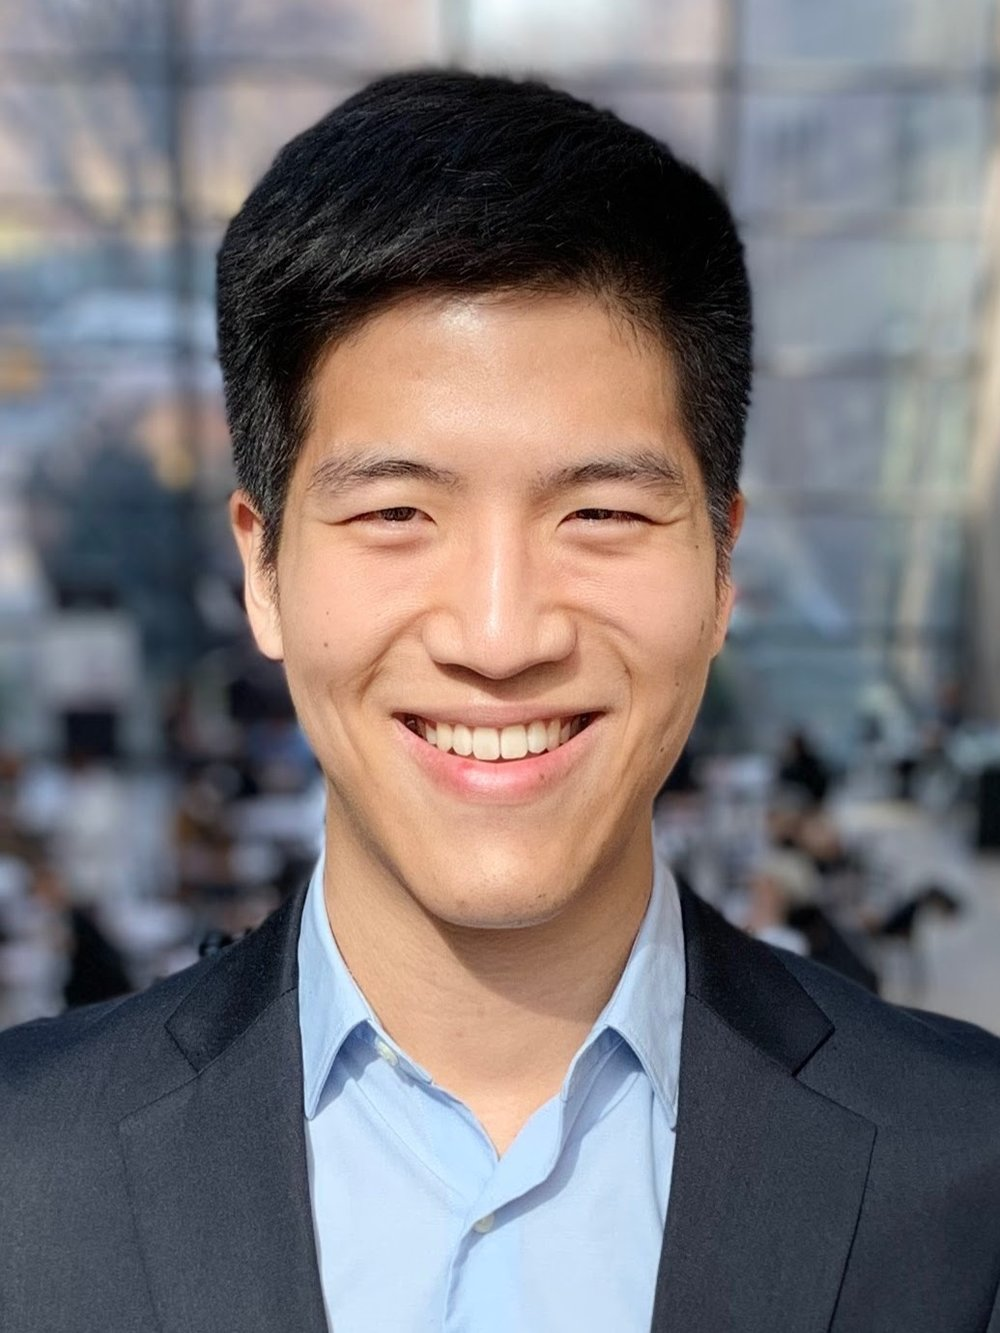 Fred Kwon, MSE - MD, PhD Student